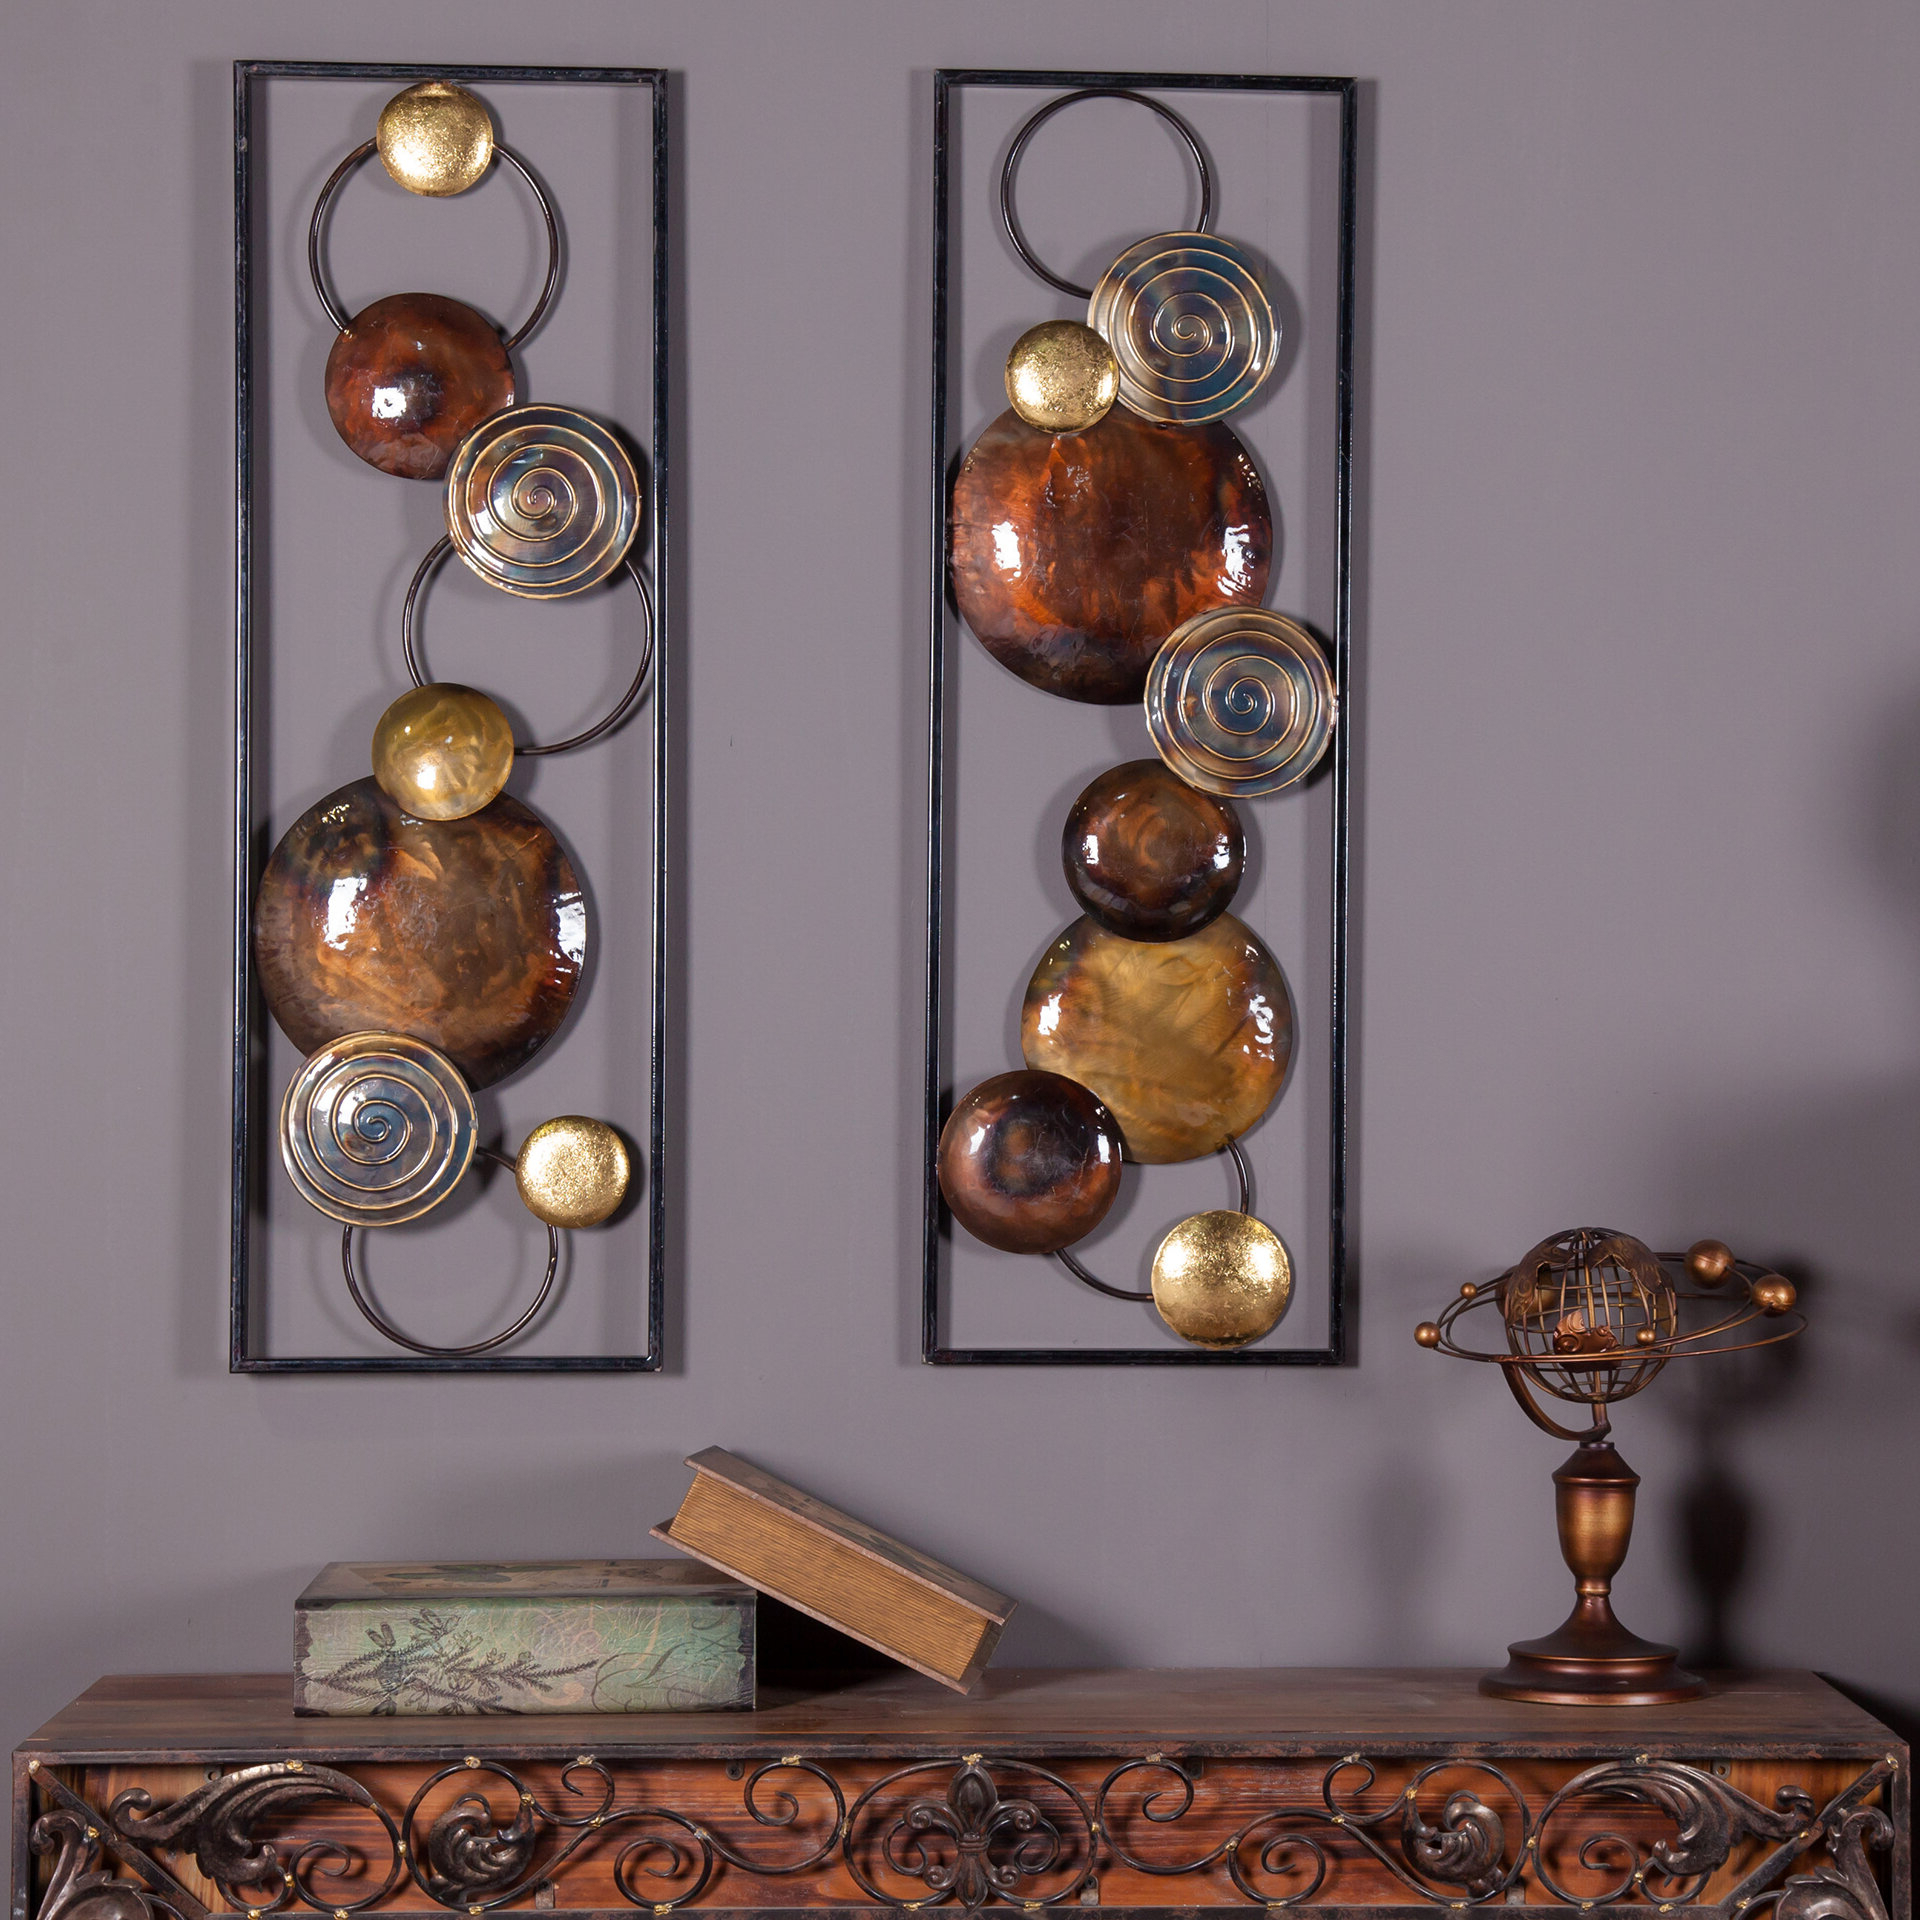 Best And Newest 2 Piece Starburst Wall Décor Set By Wrought Studio Inside 2 Piece Metal Wall Décor Set (View 17 of 20)